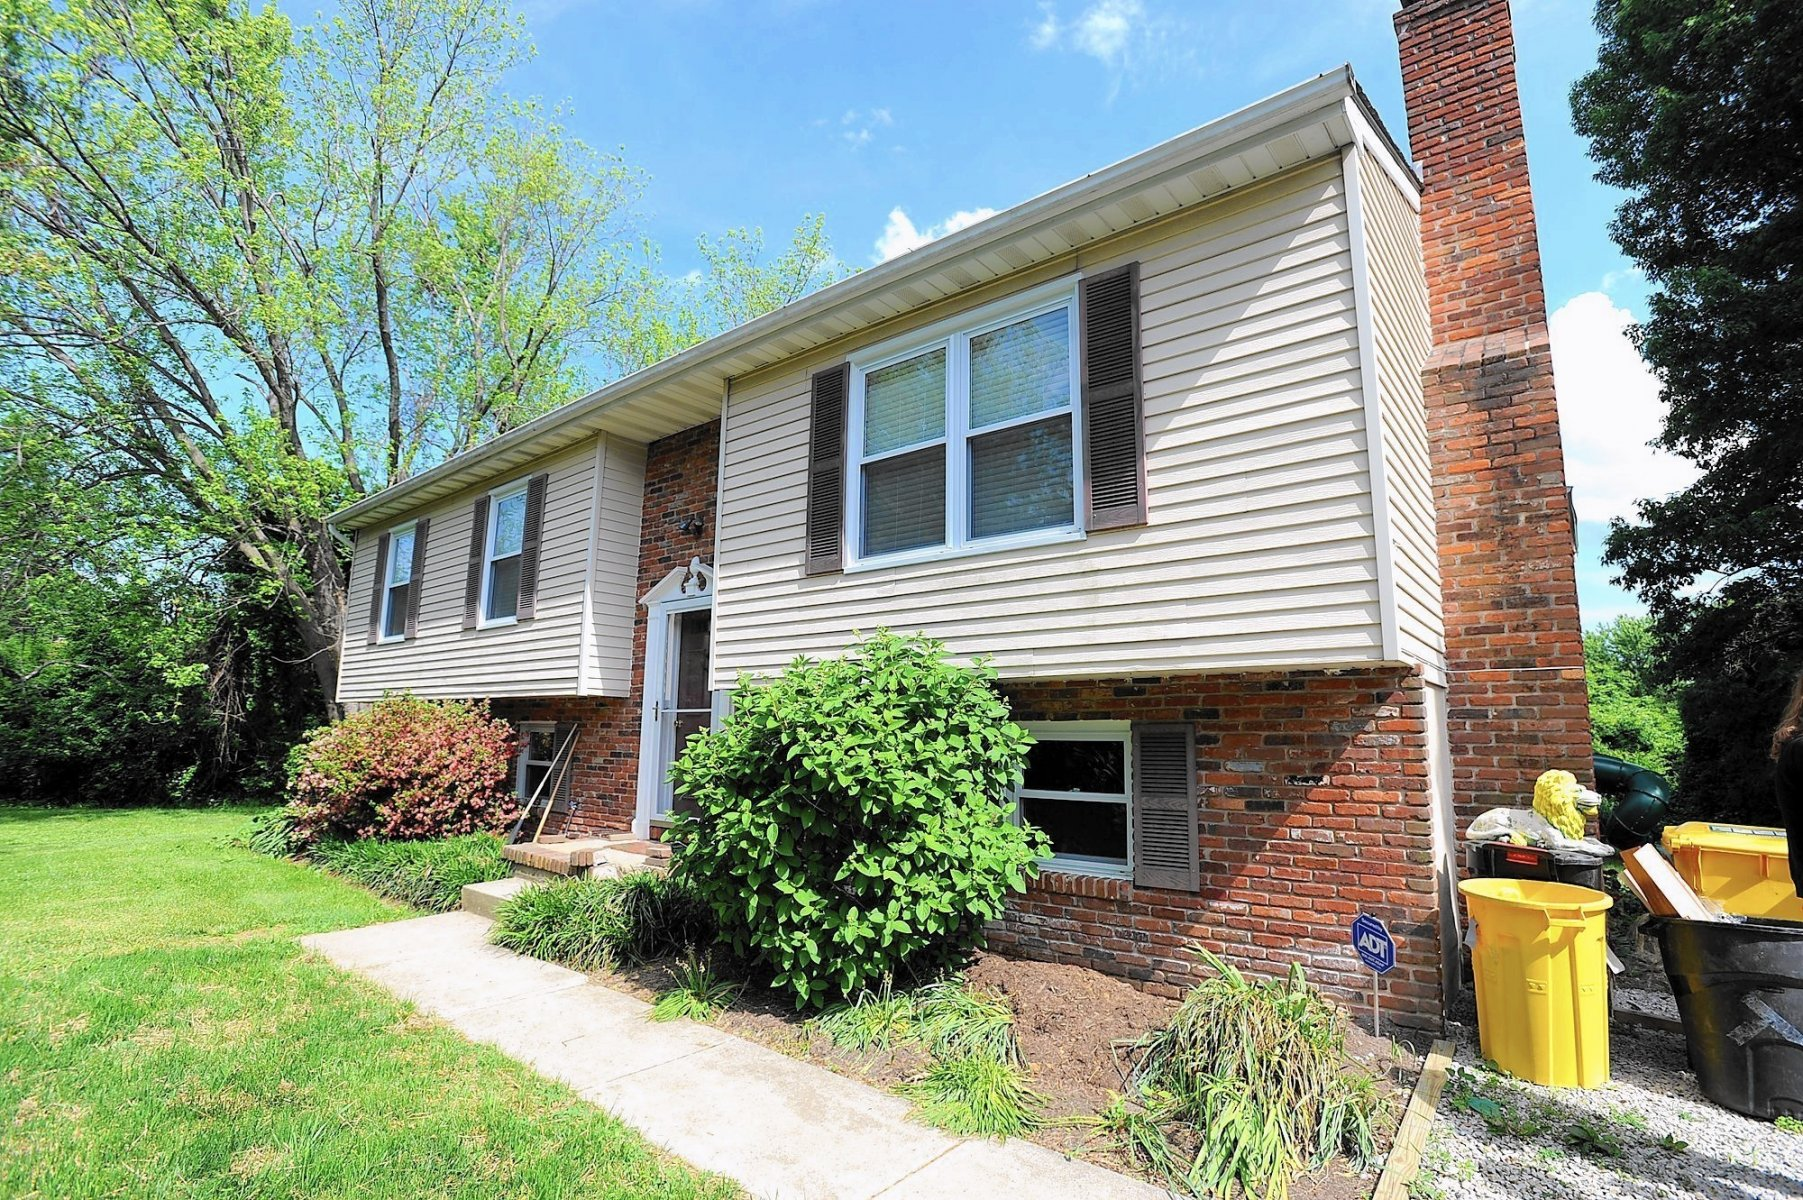 A short sale may be the best option for selling your house in Annapolis, MD